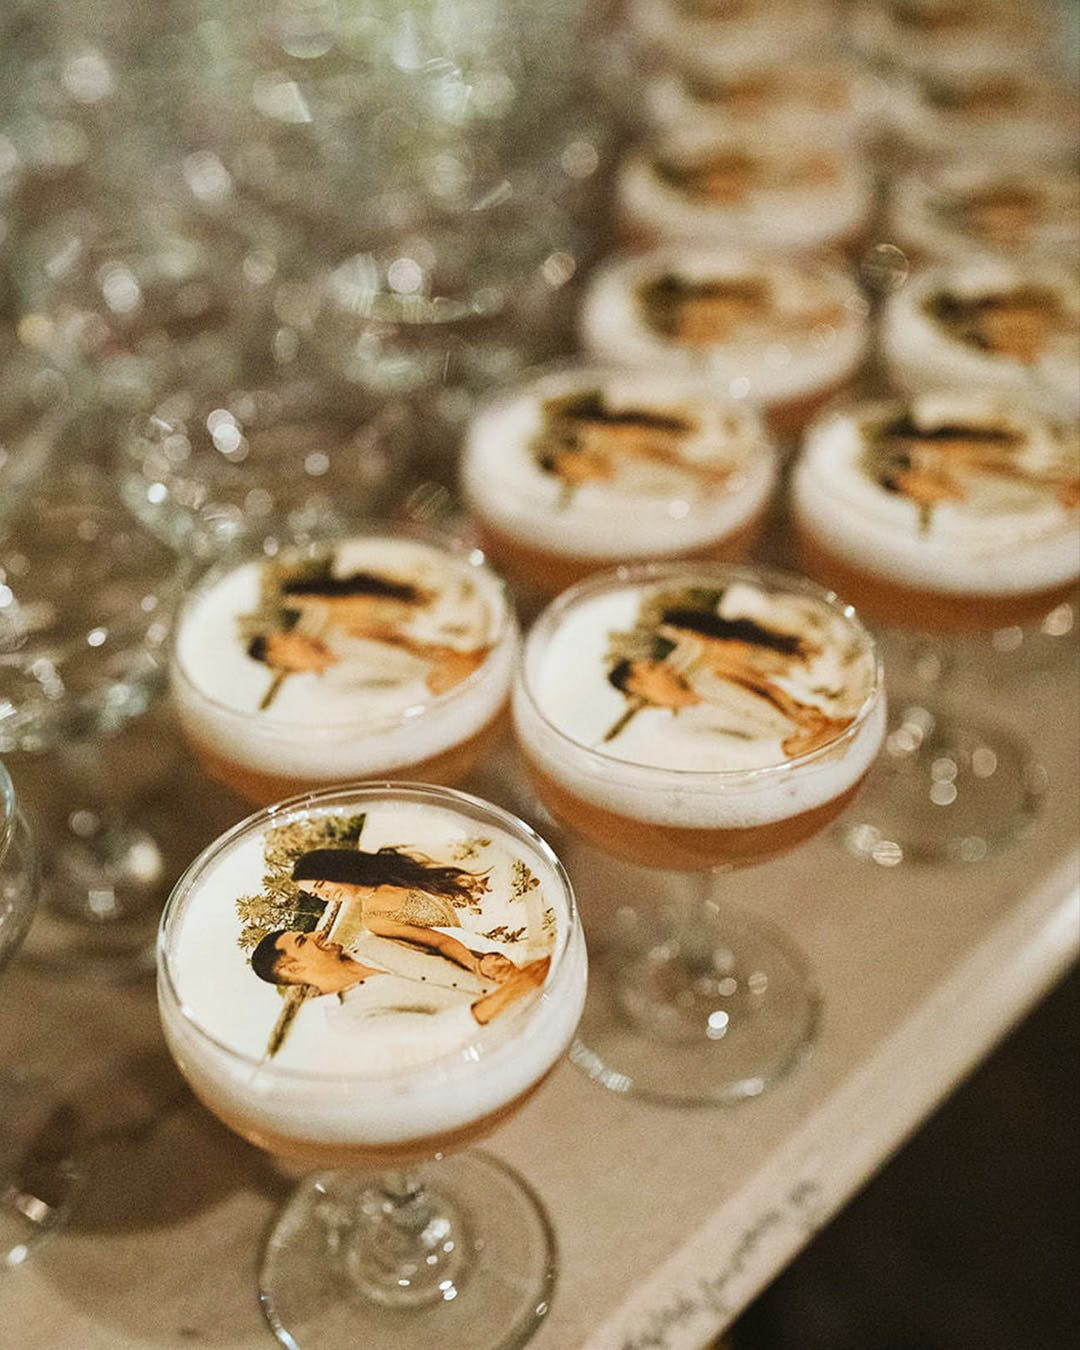 Cocktails with picture of engaged couple printed on foam | PartySlate